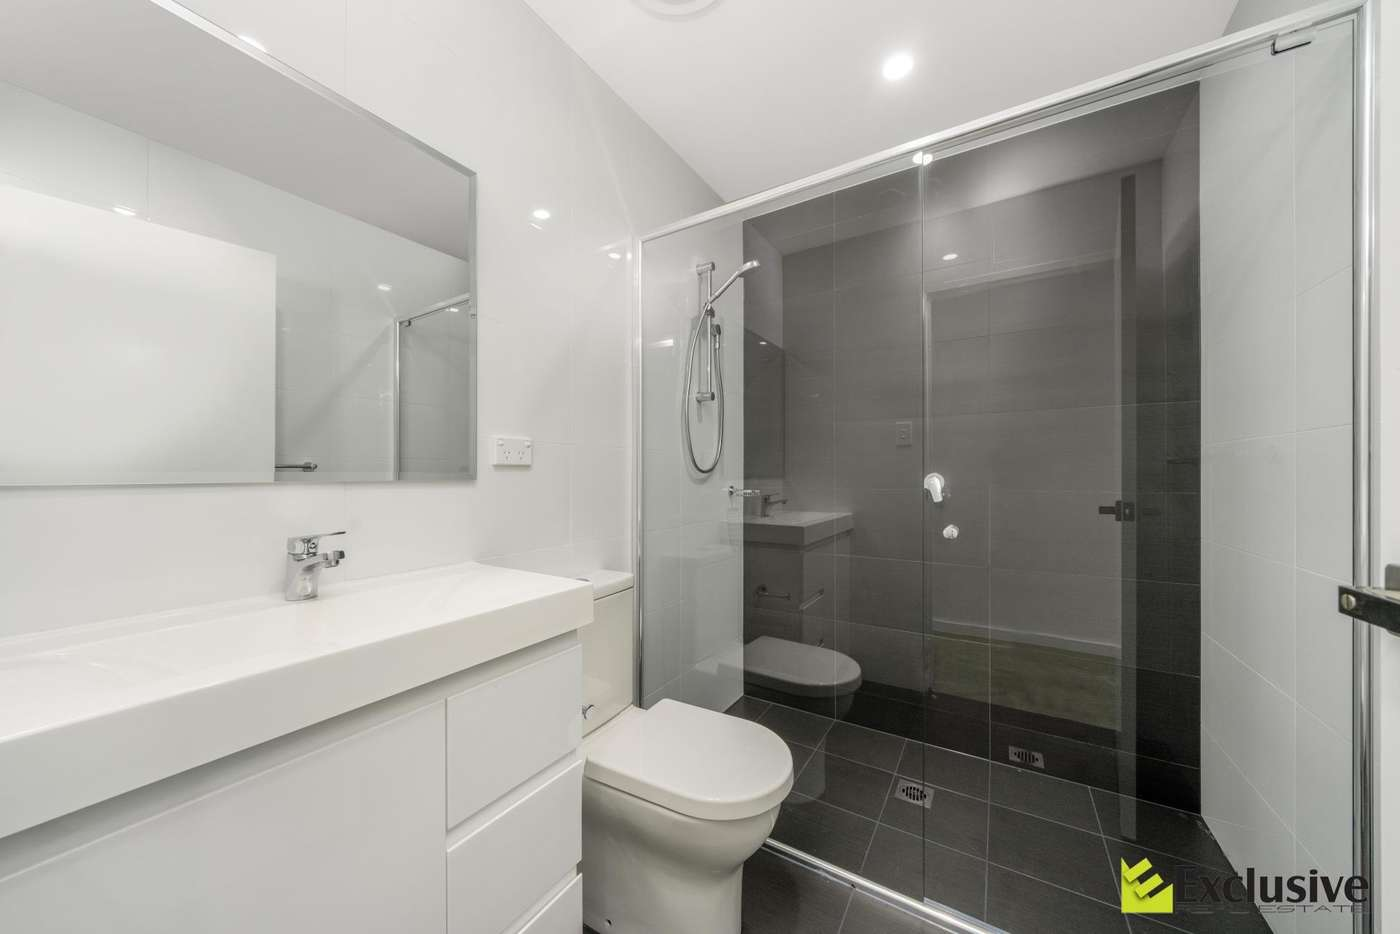 Fifth view of Homely apartment listing, 207/153 Parramatta Road, Homebush NSW 2140